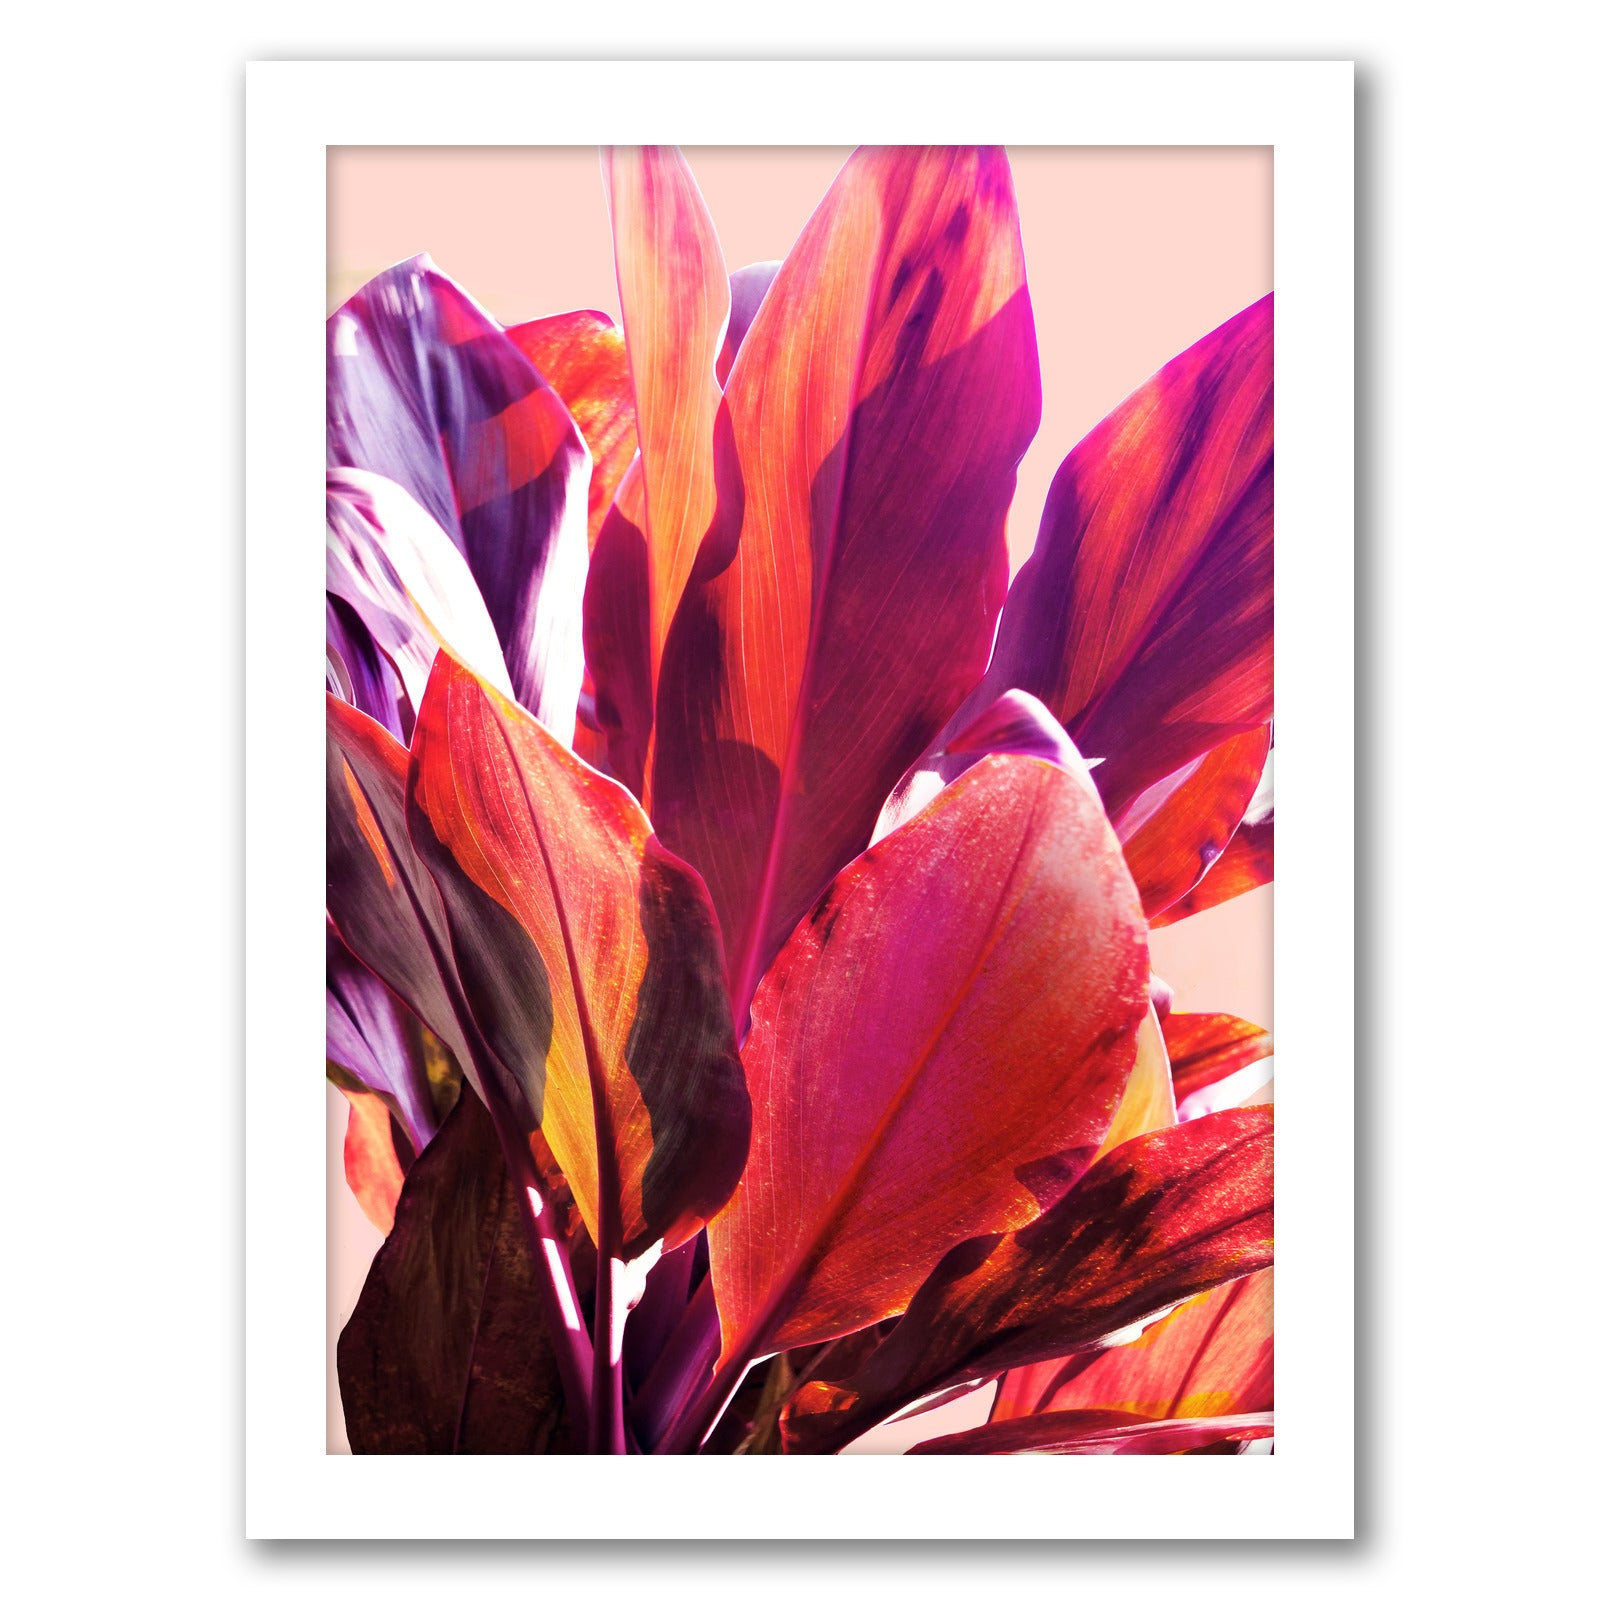 Leaves 1 by Hope Bainbridge - White Framed Print - Wall Art - Americanflat